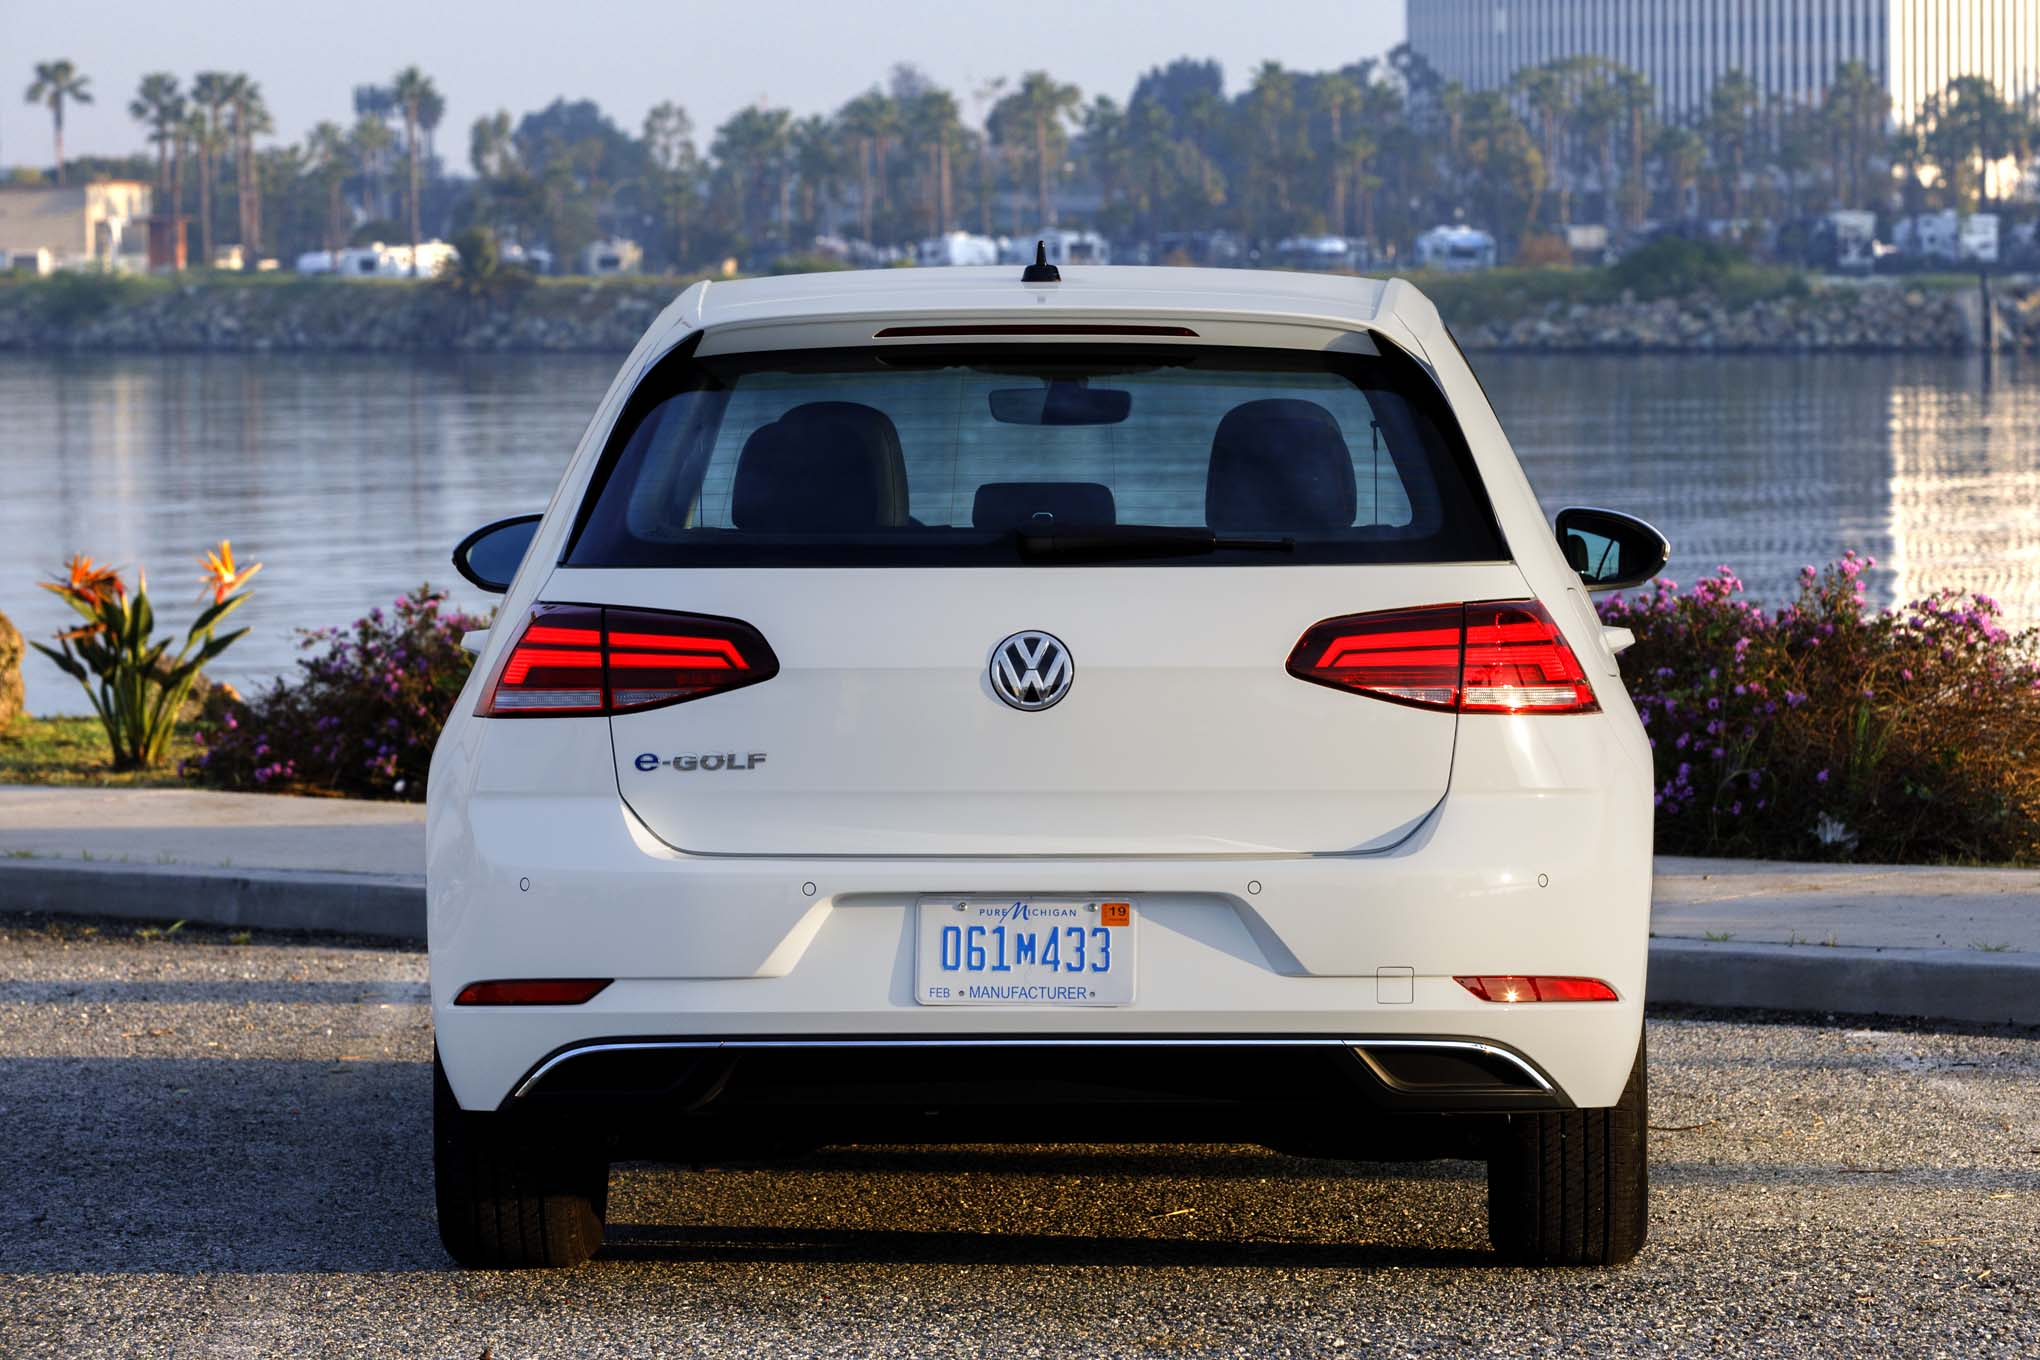 2017 Volkswagen e-Golf First Drive Review | Automobile Magazine